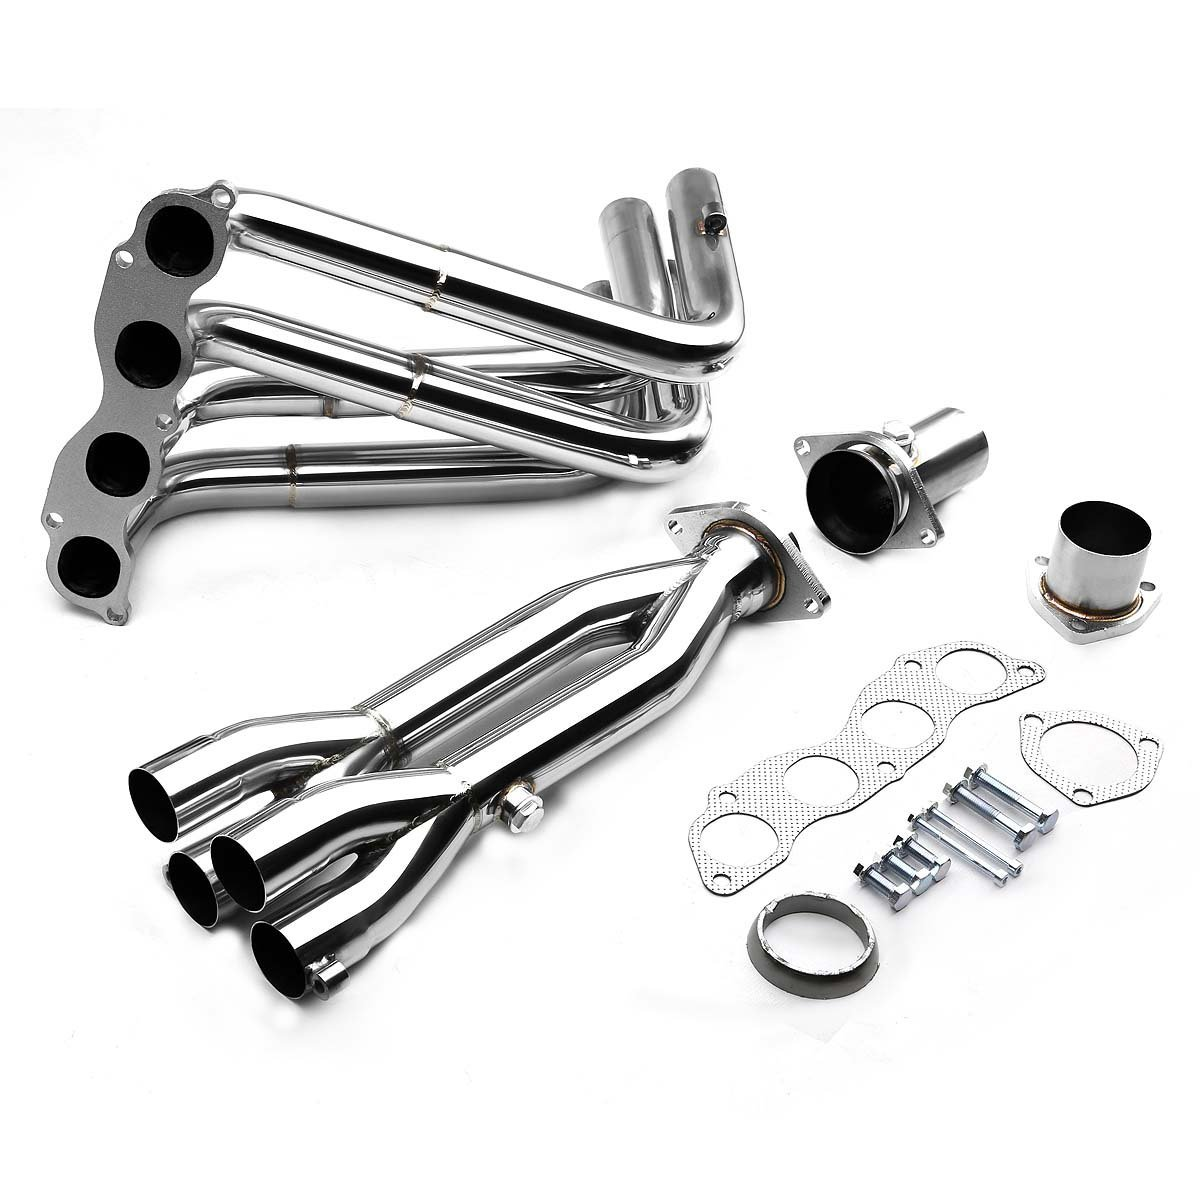 04-08 Acura TSX CL9 Stainless TRI-Y 4-2-1 Racing Exhaust